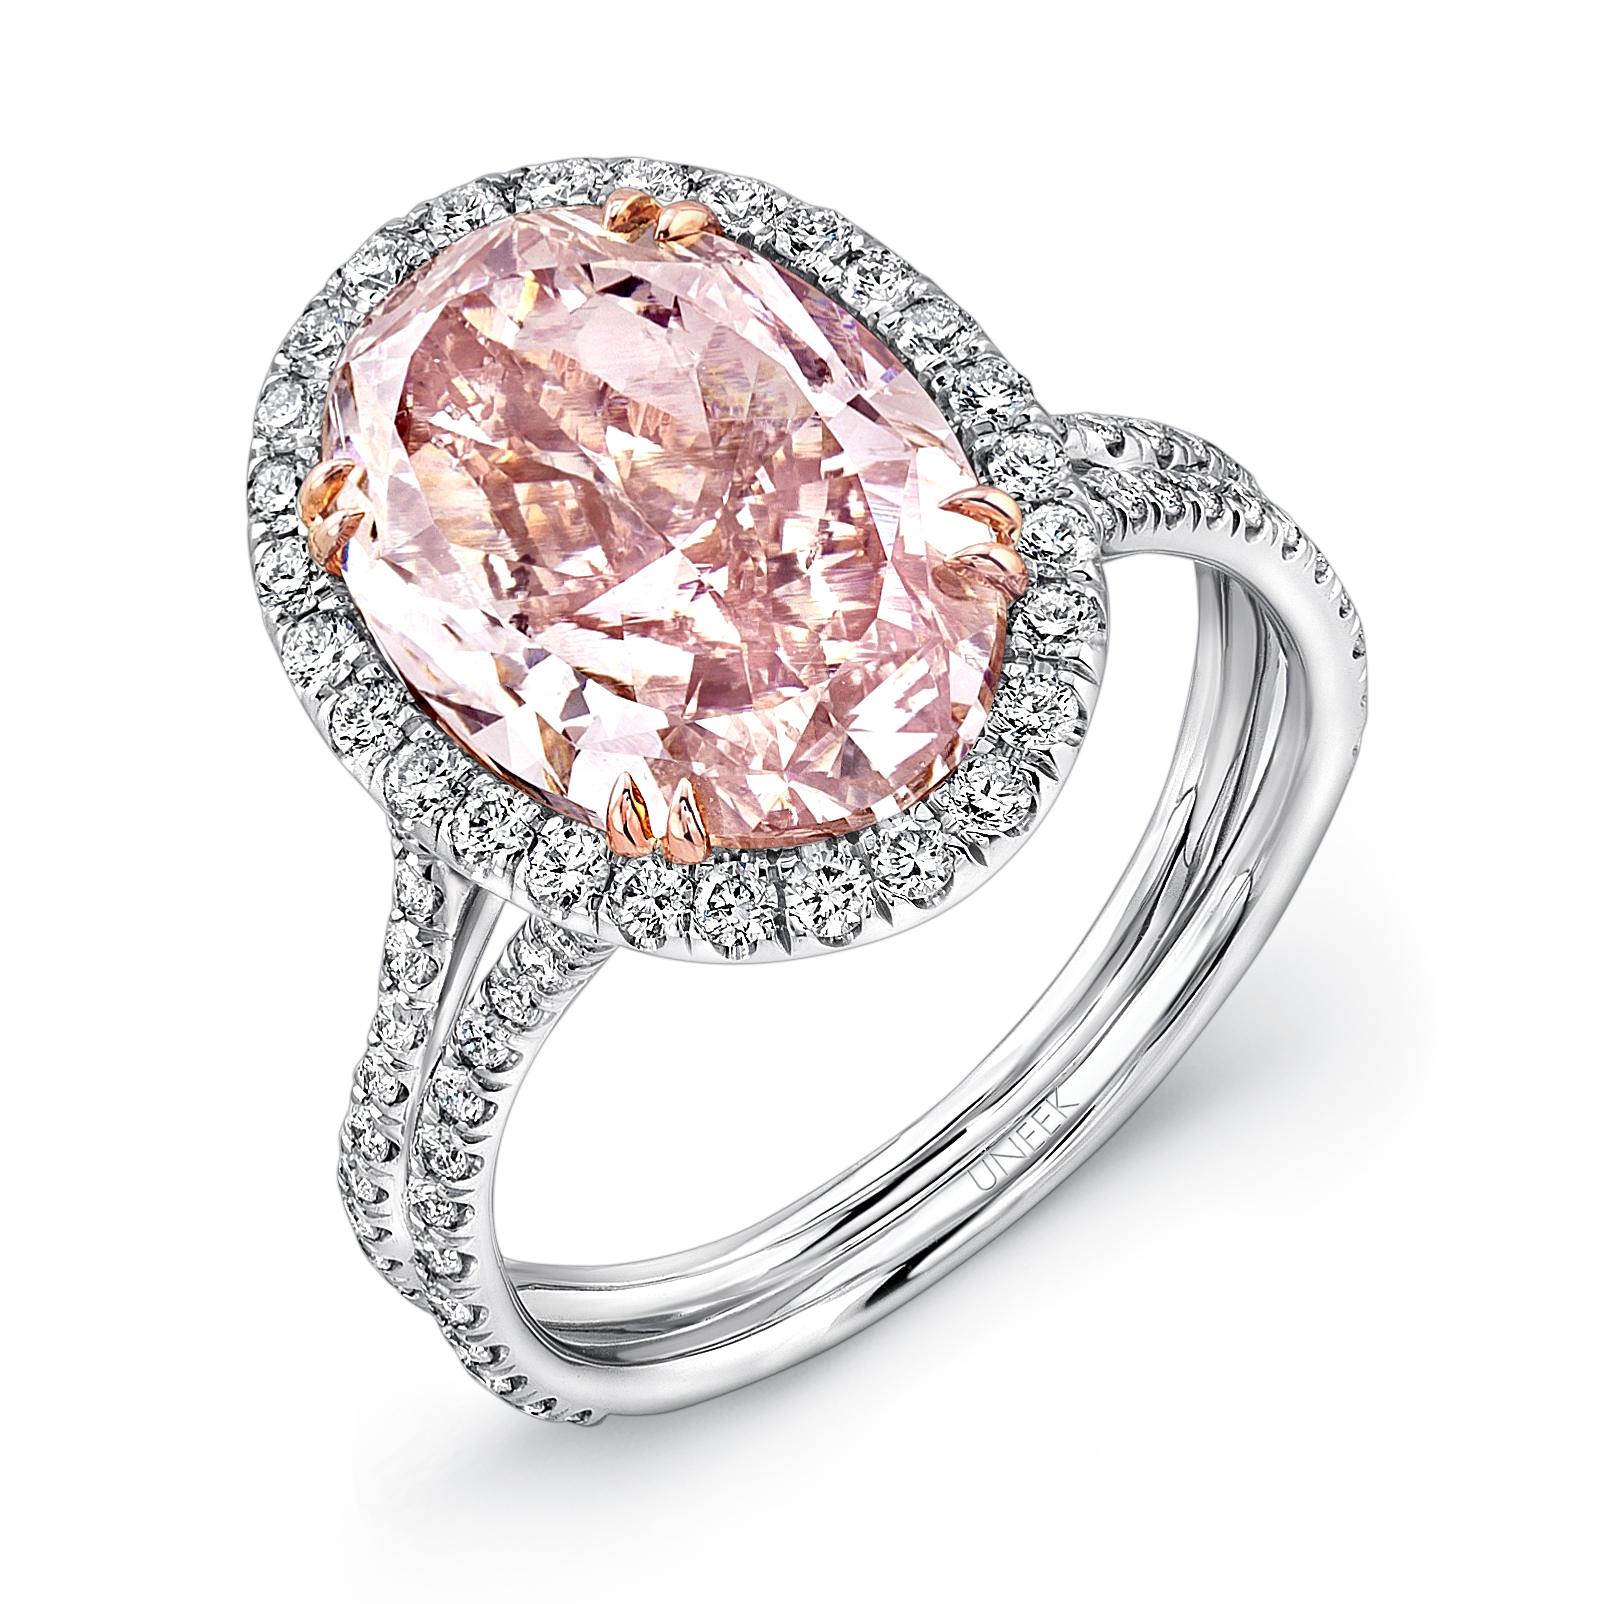 The 1 5 Million Dollar Pink Diamond Engagement Ring By